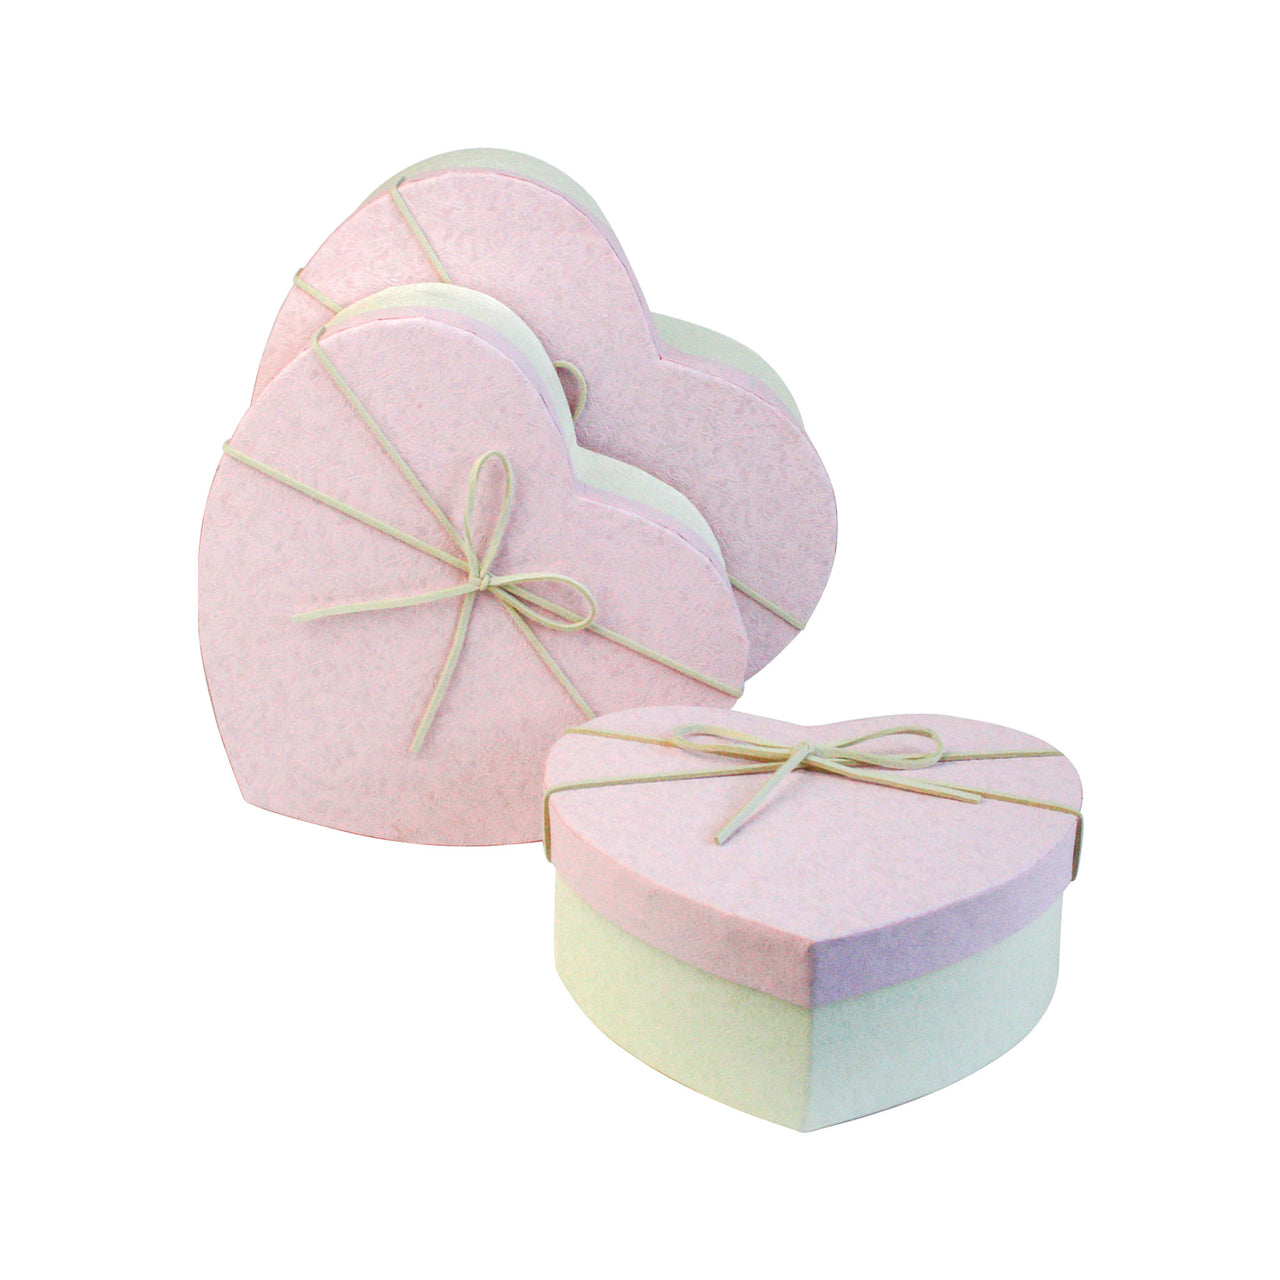 Hearts Textured Cream / Baby Pink Gift Box -Set of 3